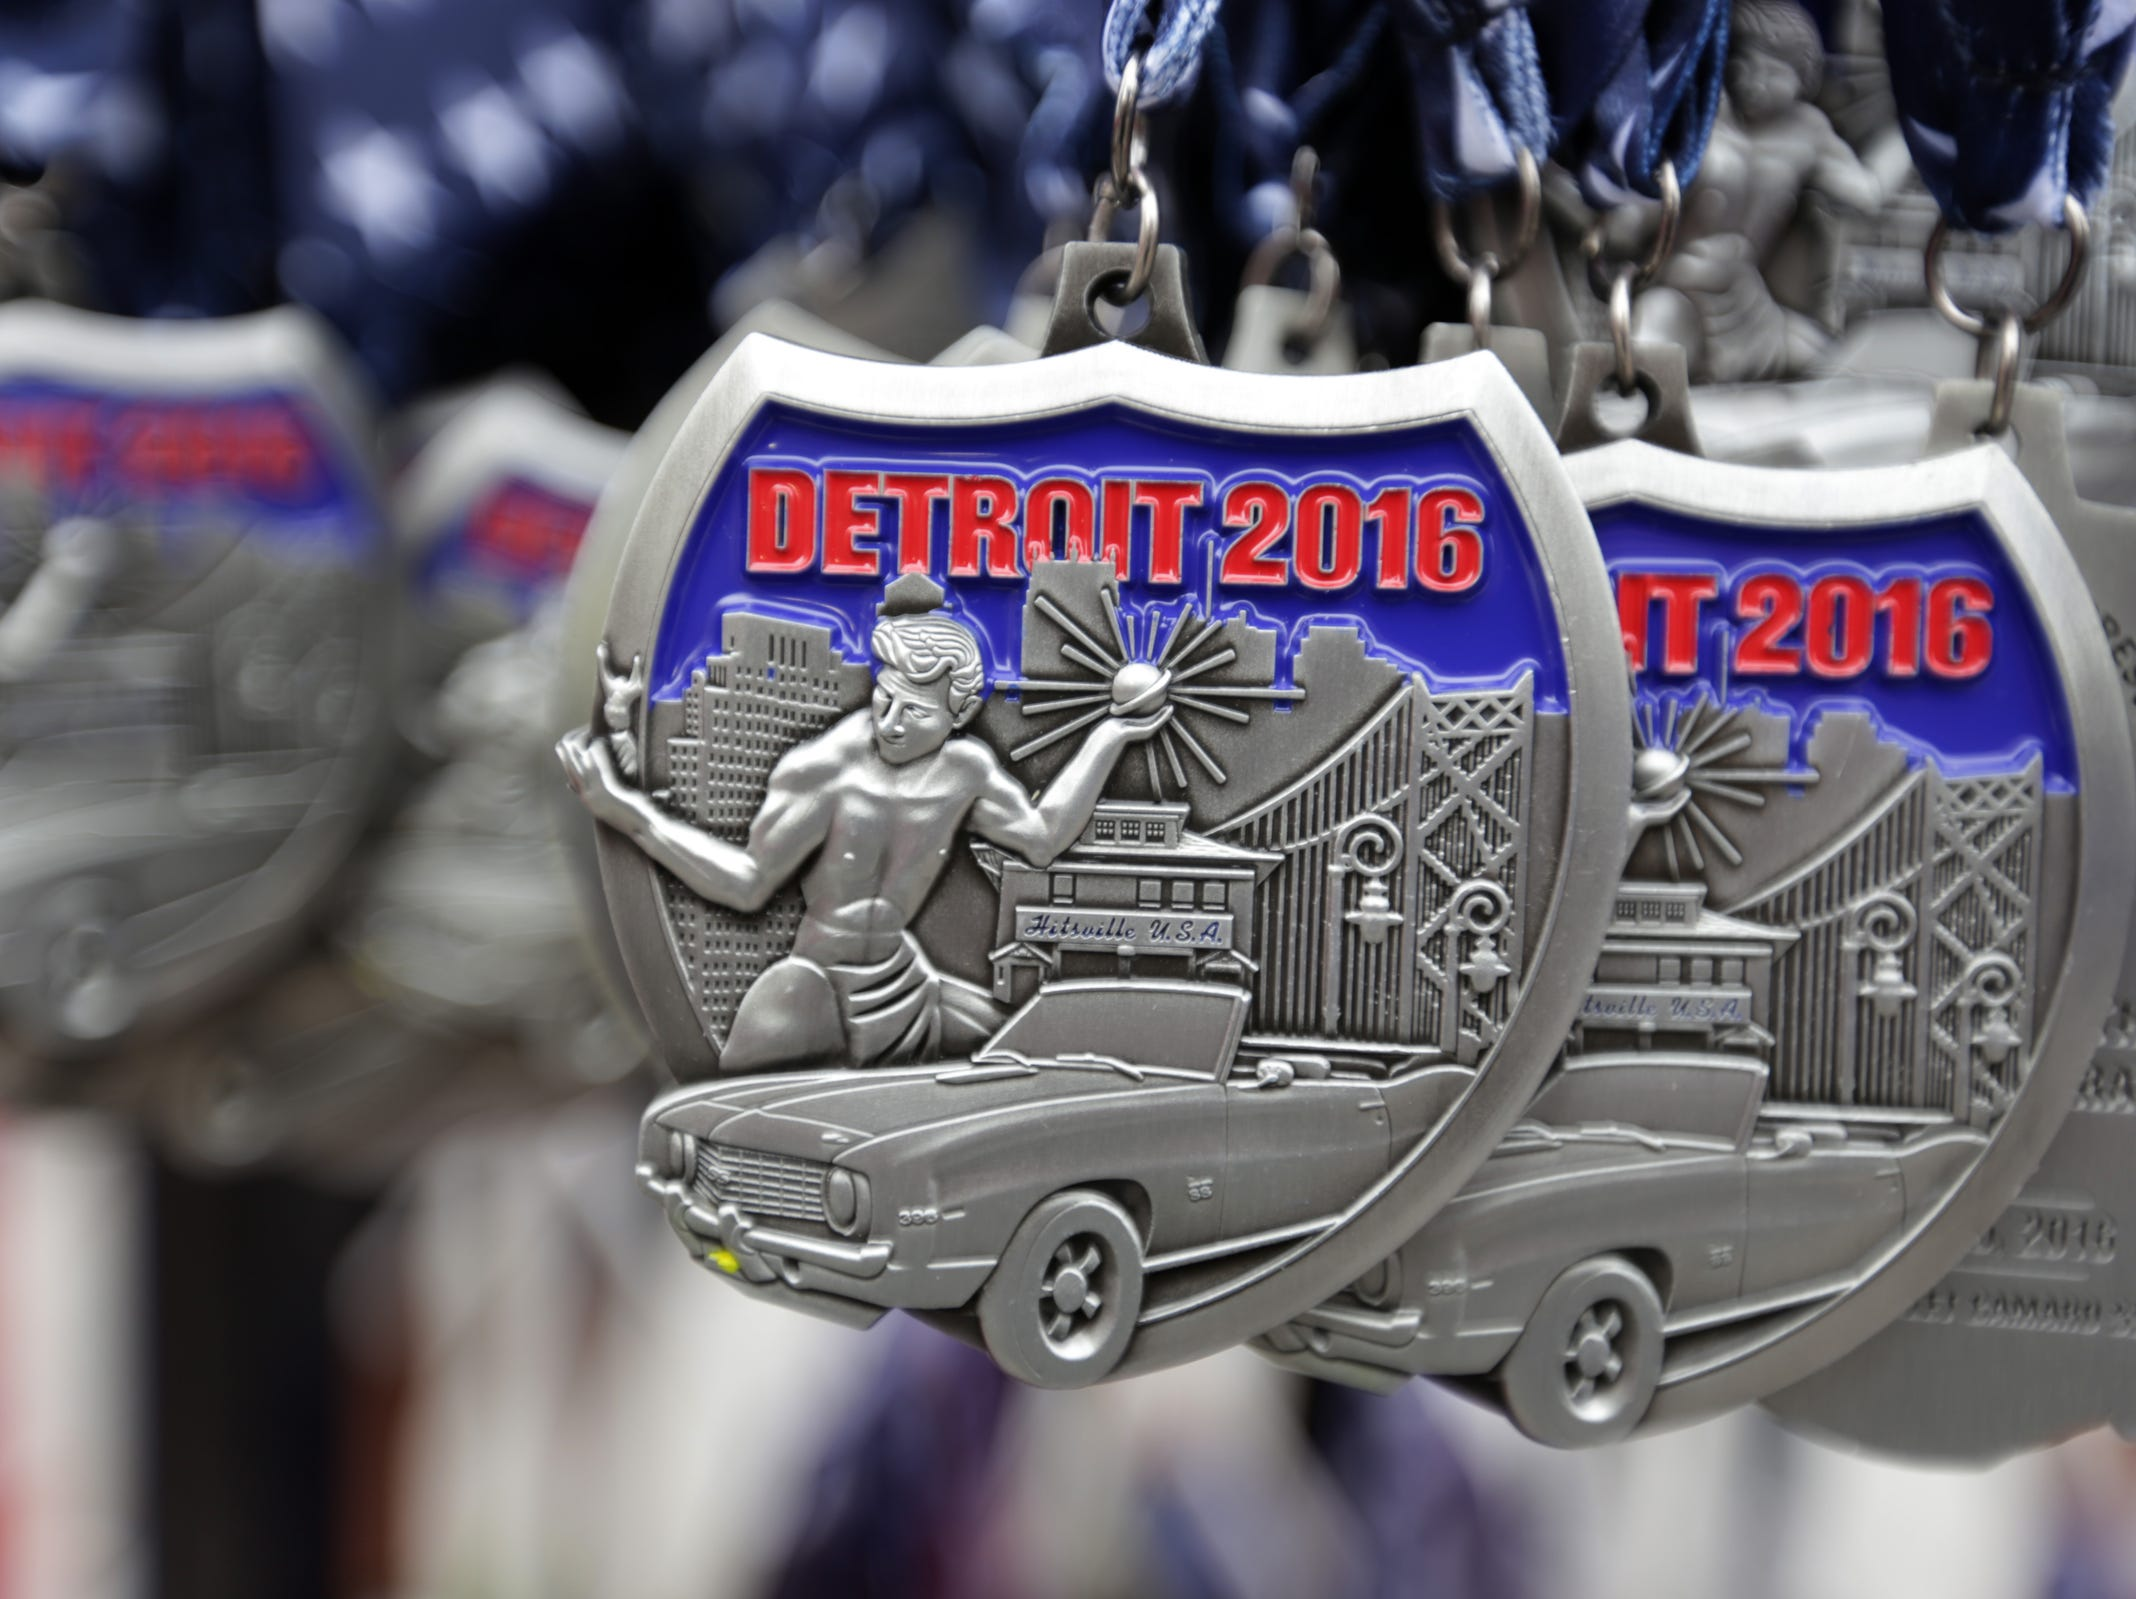 Medals for the 39th Annual Detroit Free Press/Talmer Bank Marathon in Detroit on Sunday, Oct. 16, 2016.